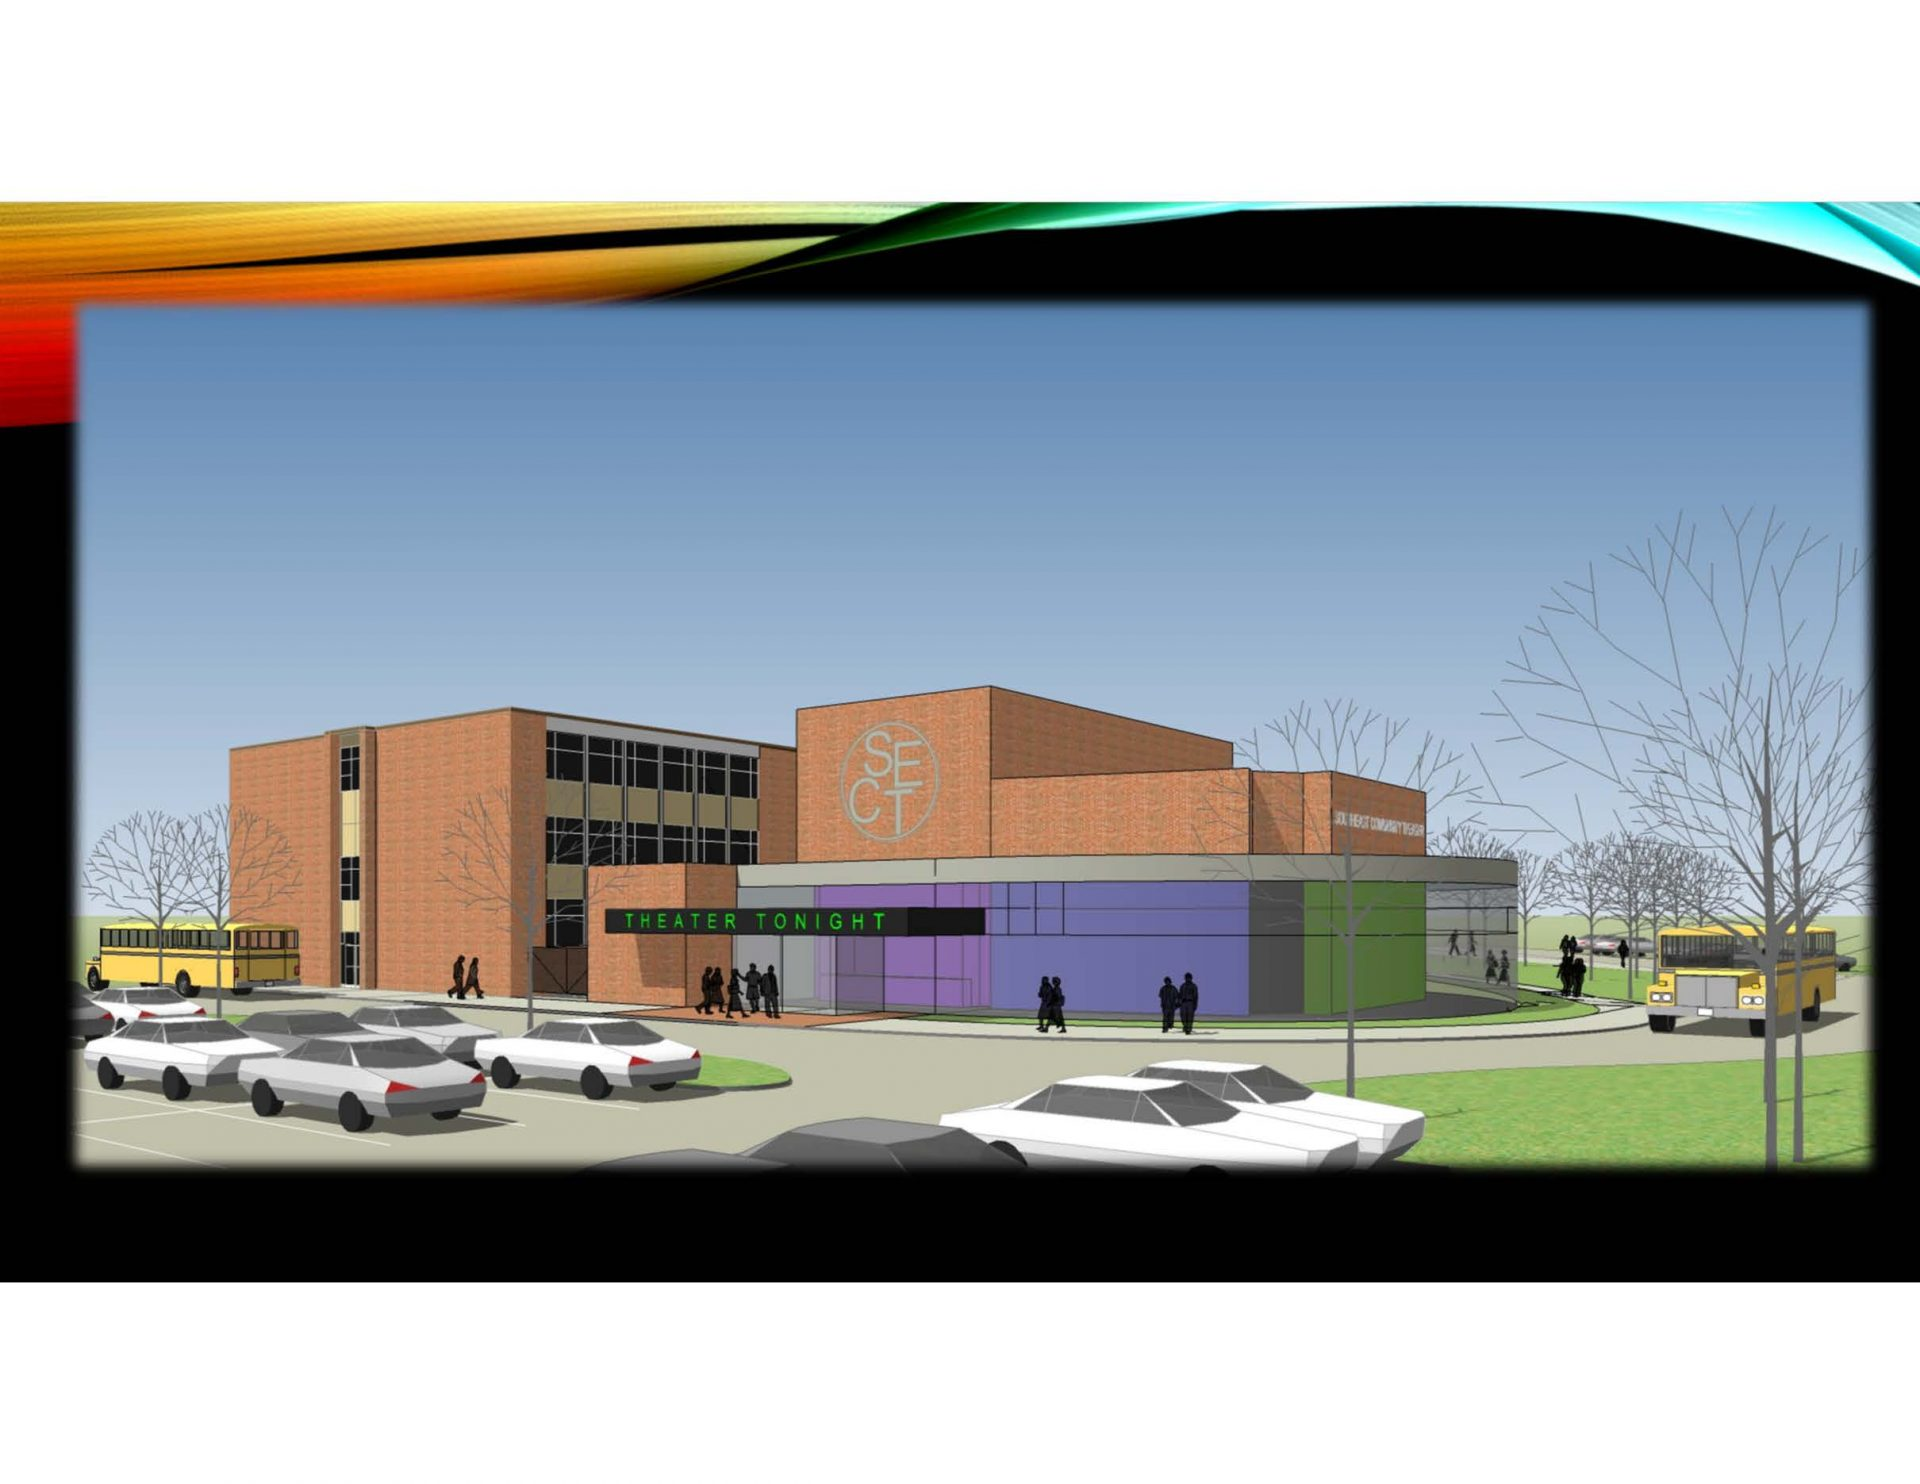 CALLING ALL ARTISTS:  SOUTHEASTERN IS CURRENTLY CONSTRUCTING A NEW PERFORMING ARTS CENTER!